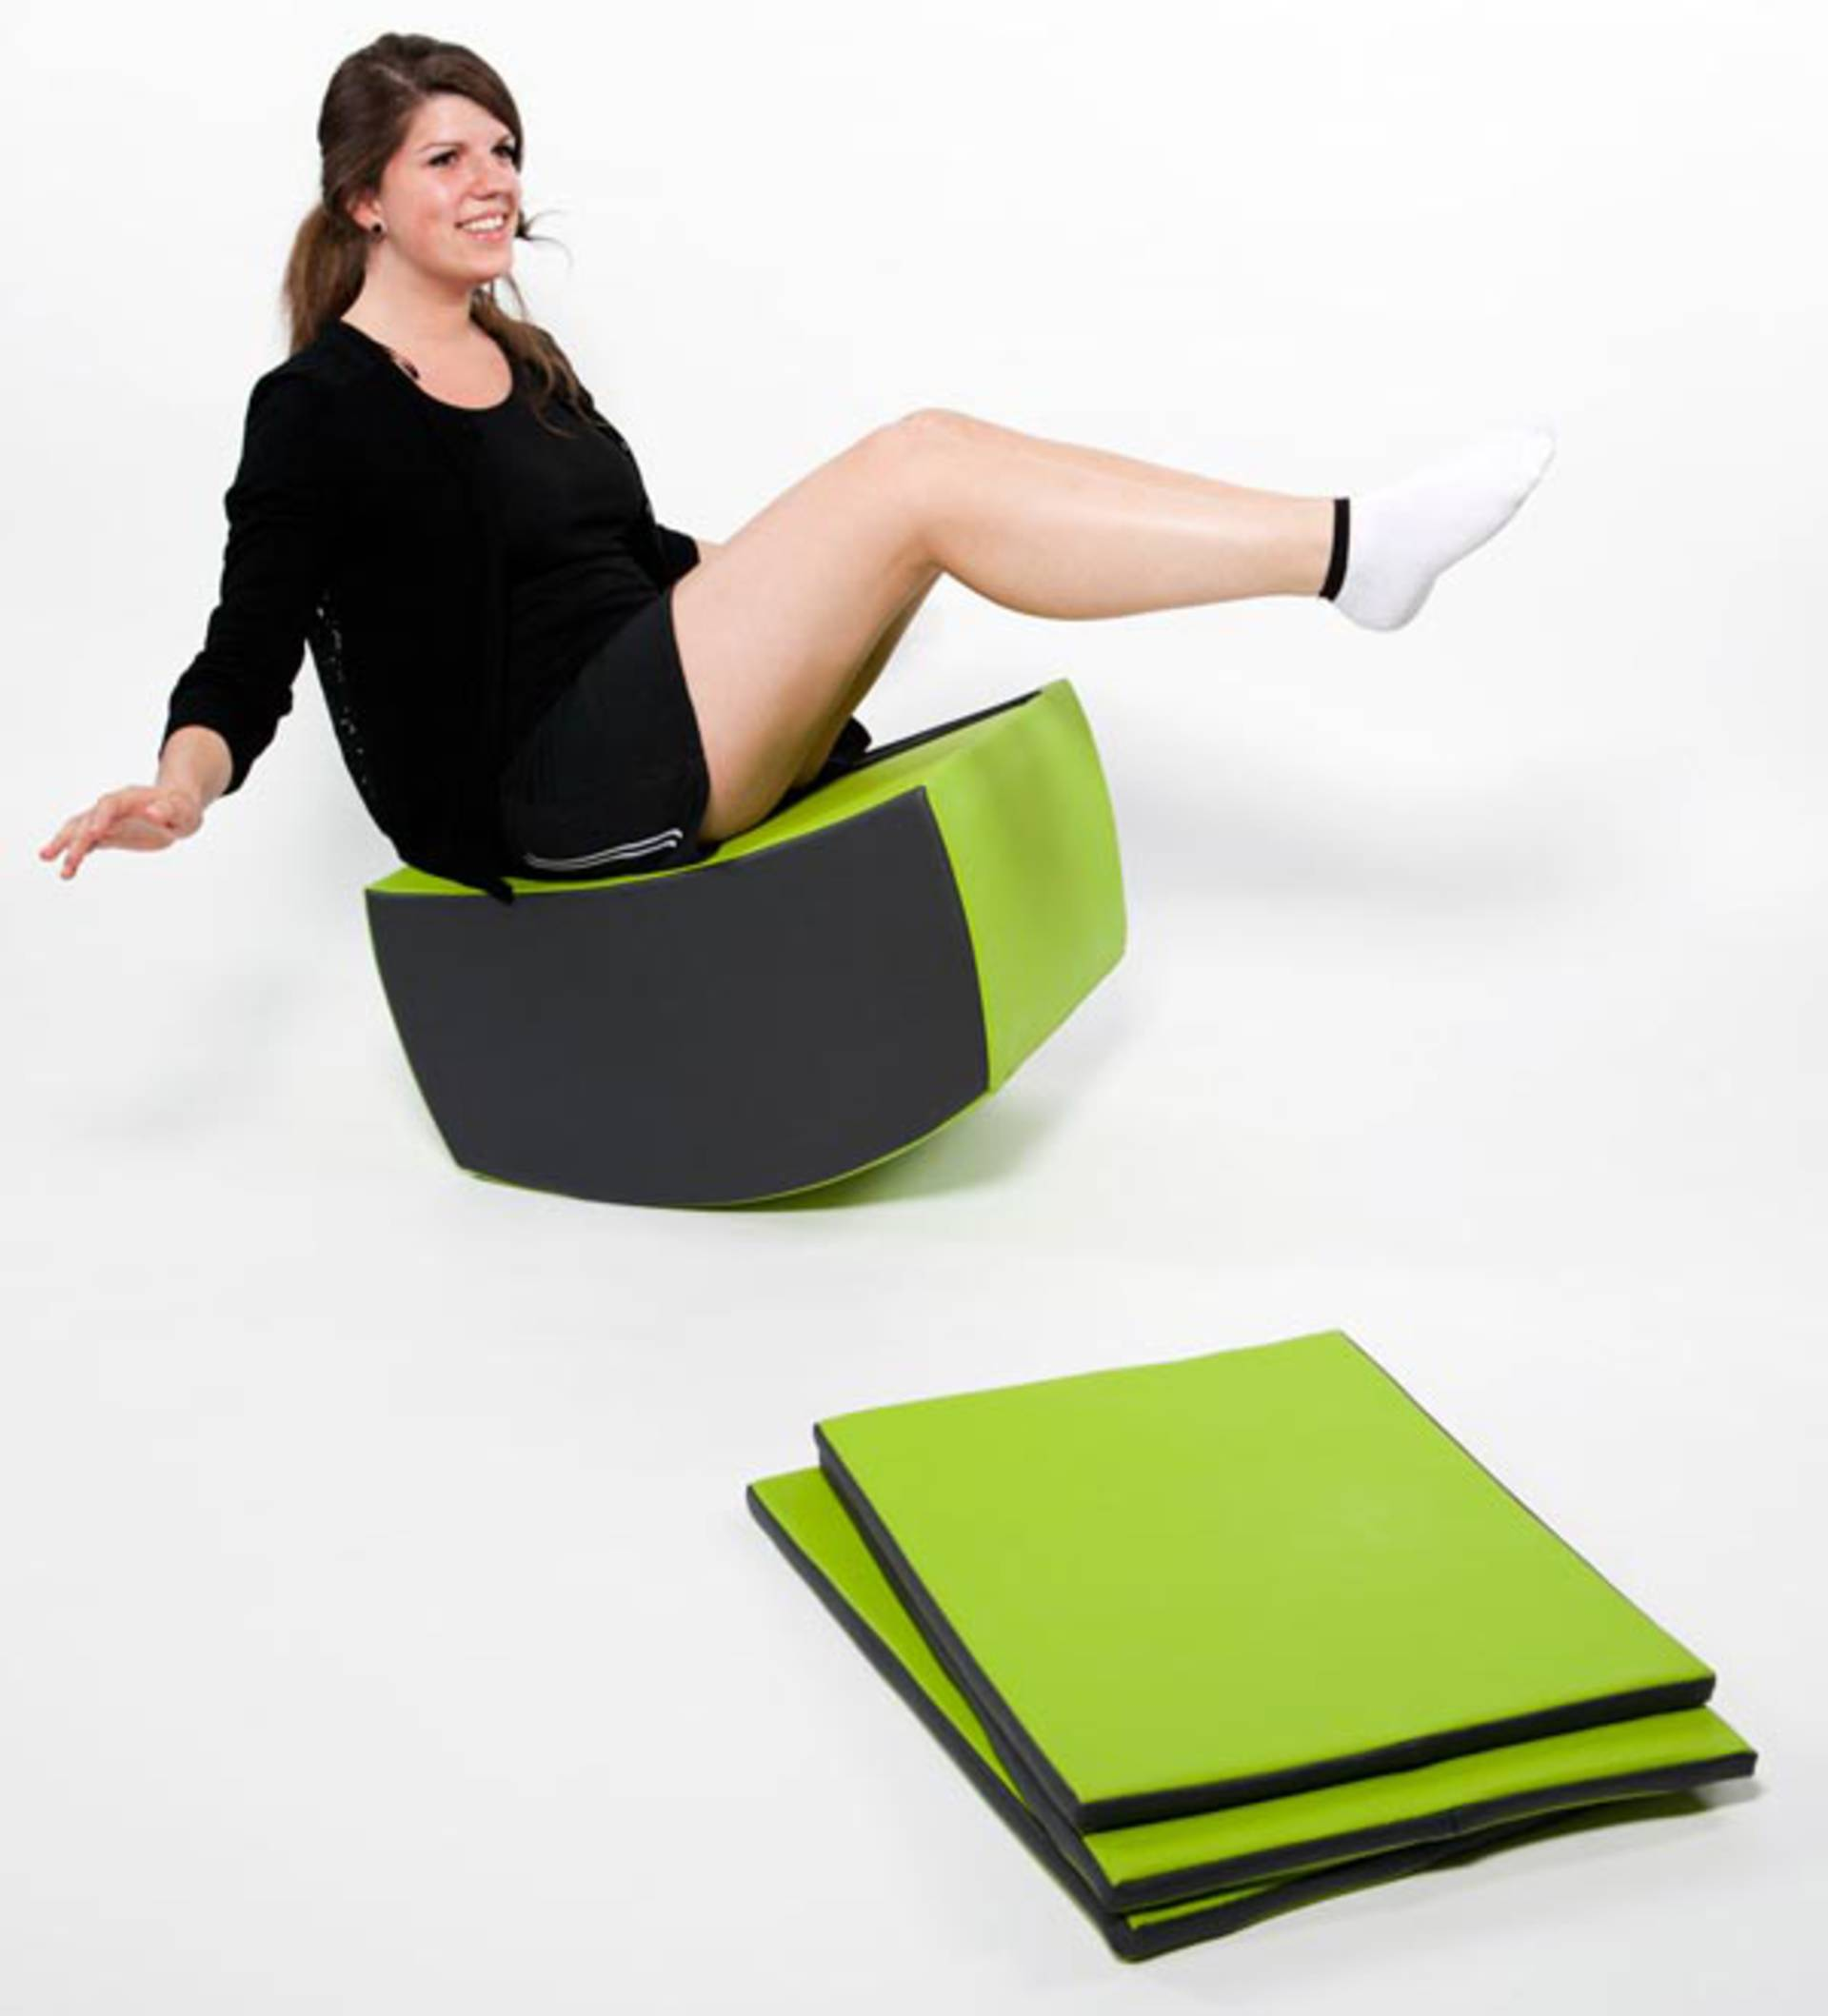 Home Gym Furniture: Jopple Stool For Fitness By Jaigu, Mathilde De Colnet And